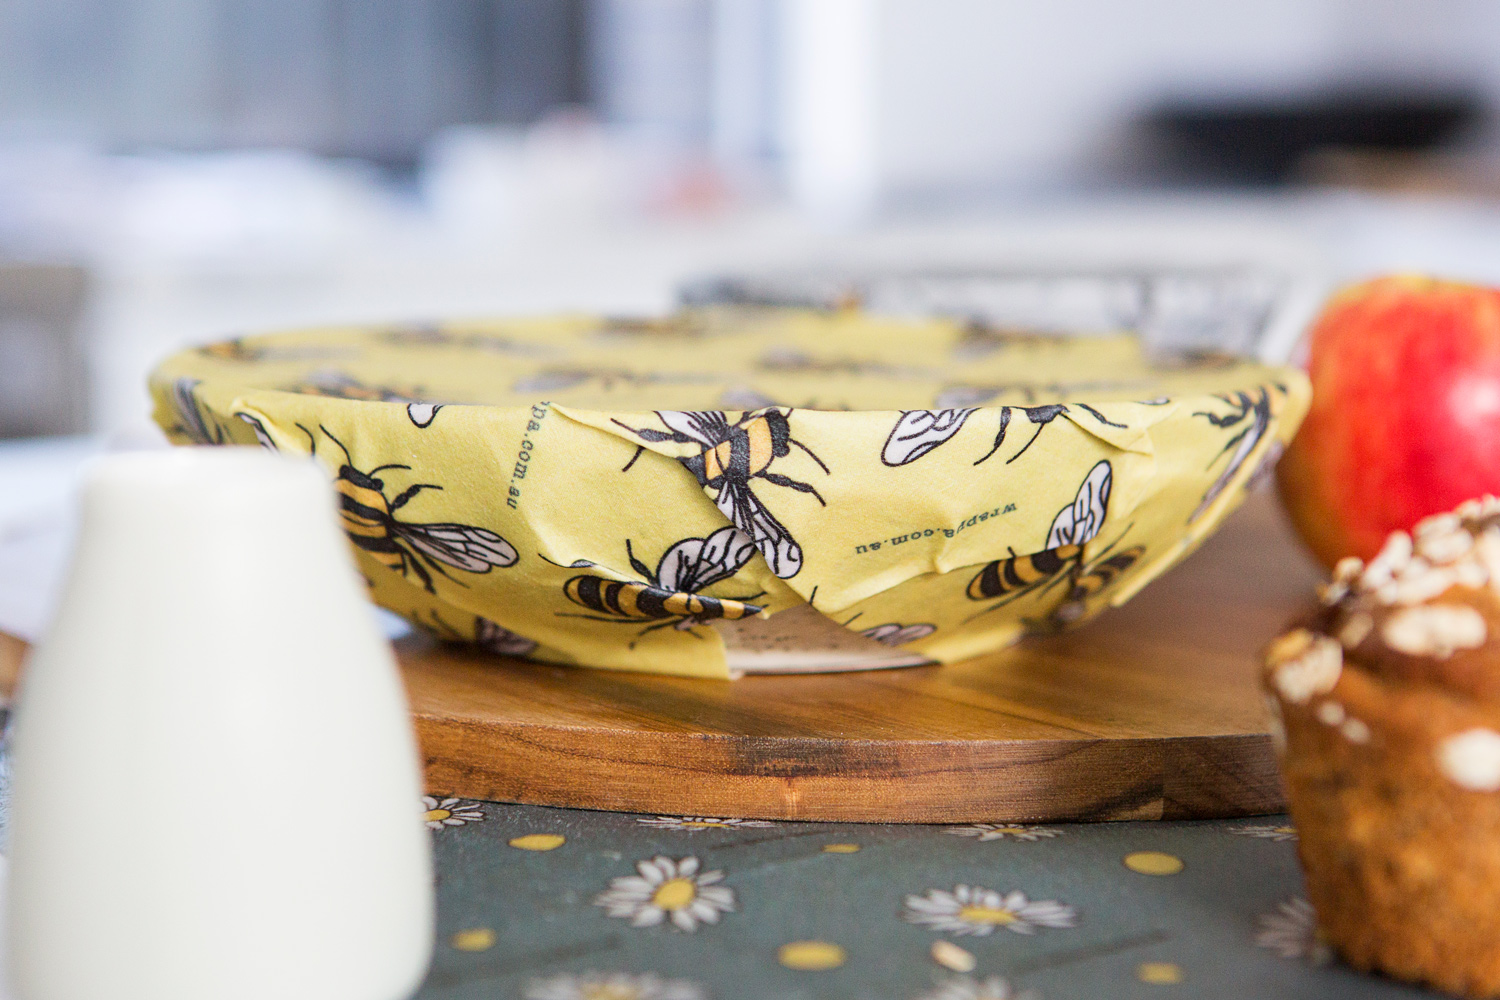 Wrappa Reusable Beeswax wrap and vegan wrap Jumbo Busy Bees covering bowl